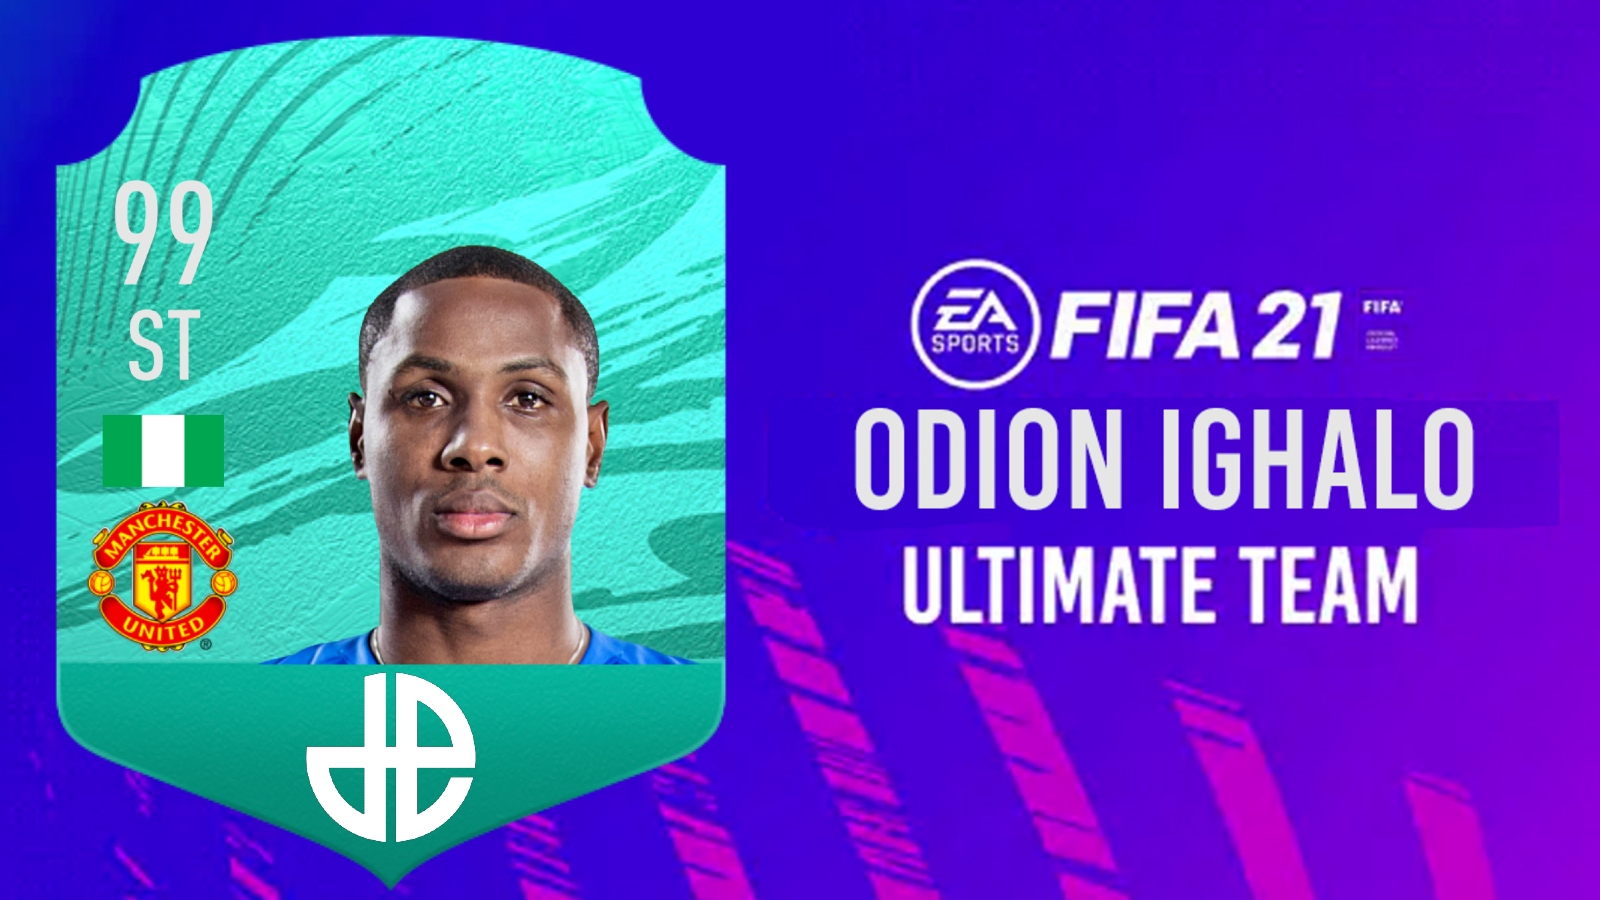 Odion Ighalo FIFA 21 Ultimate Team squad revealed